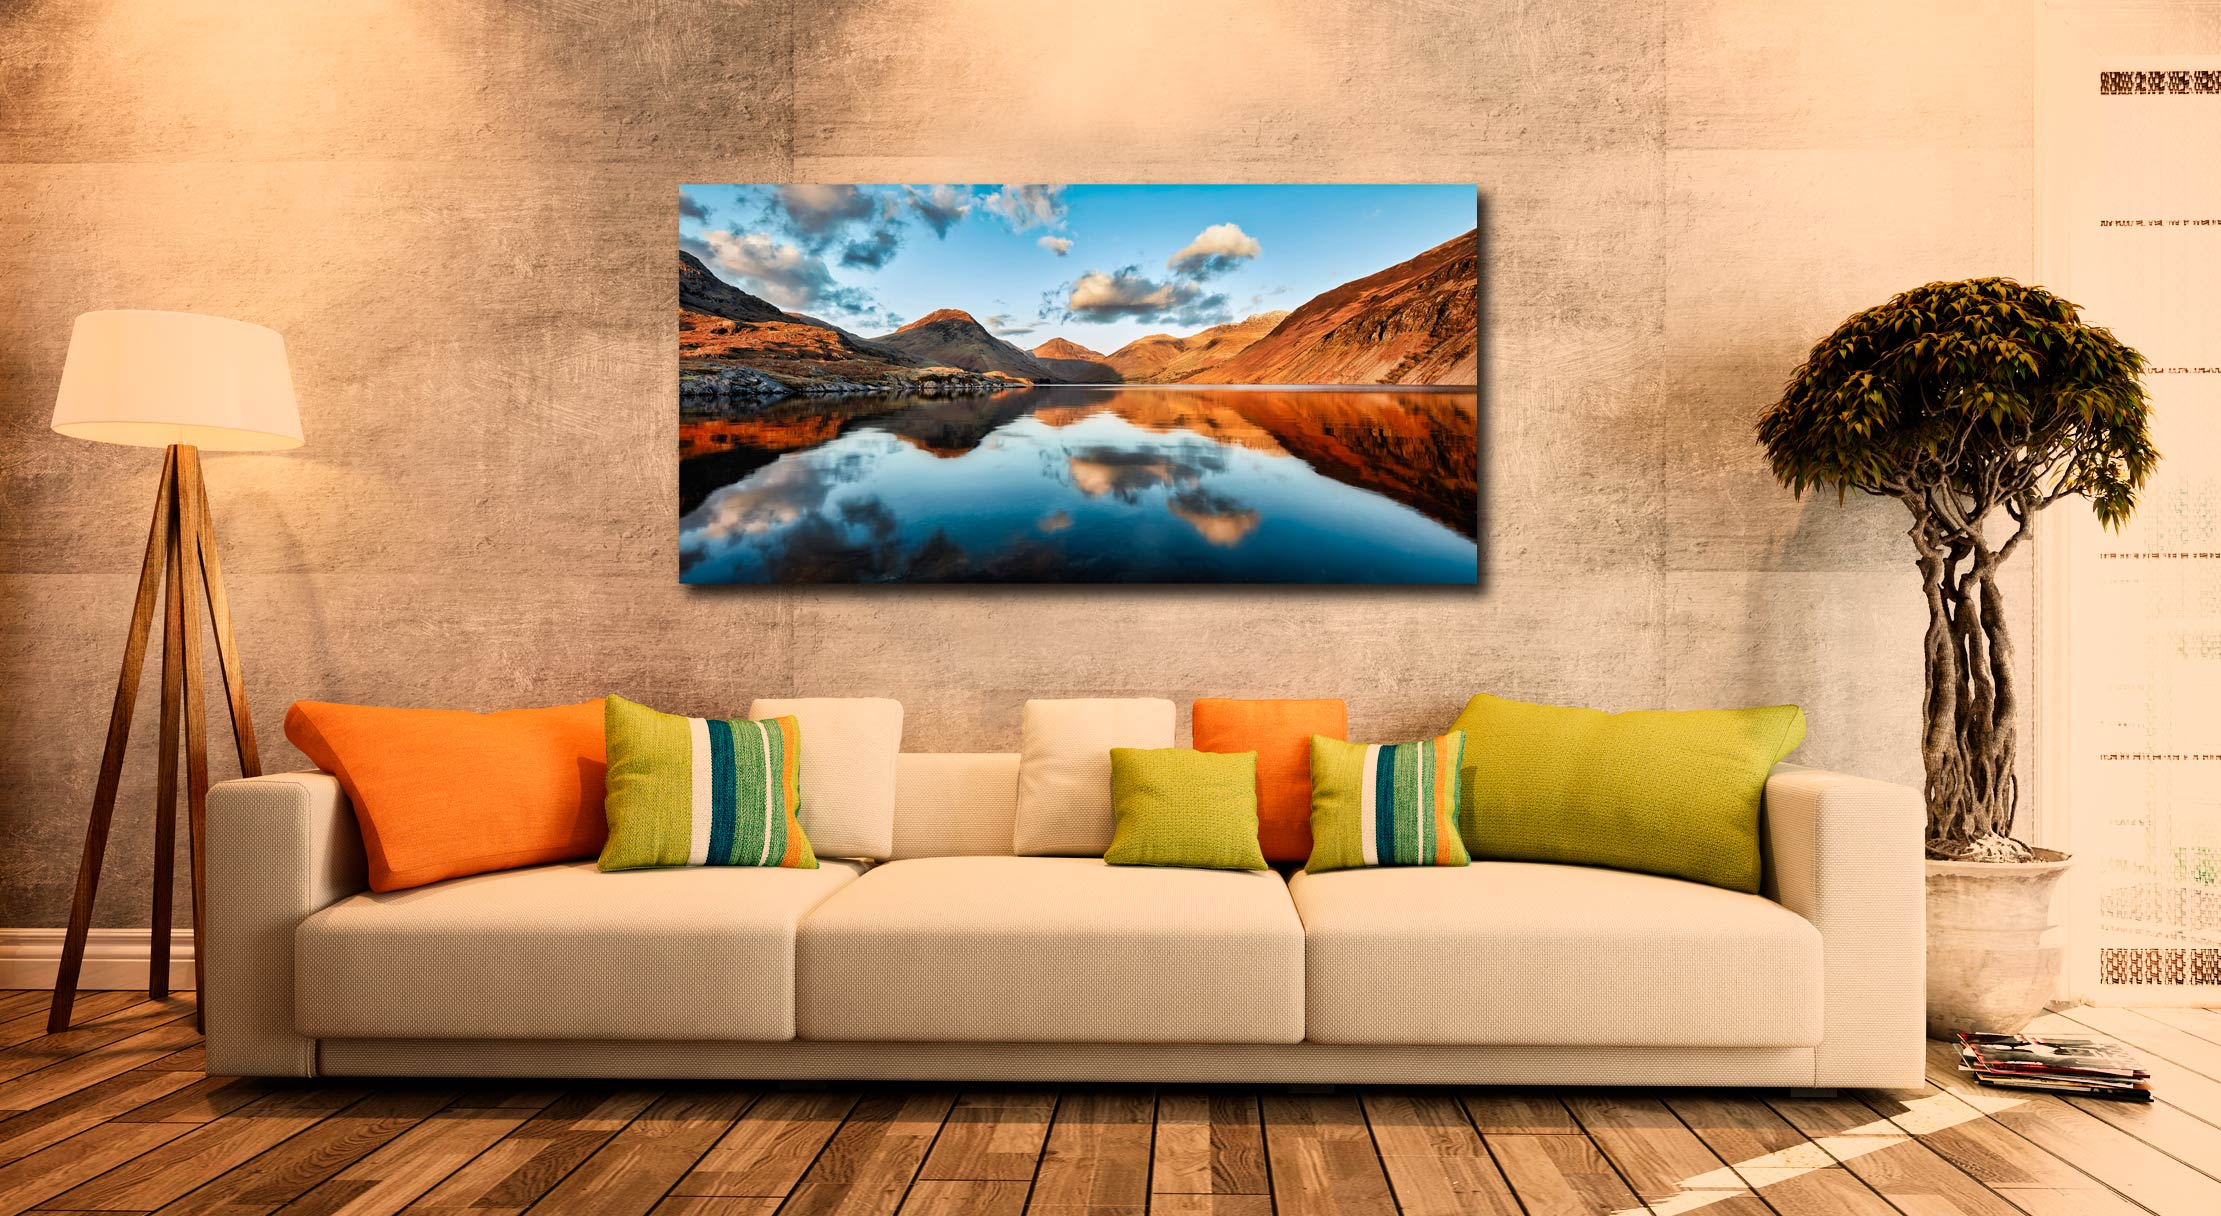 Golden Light Over Wast Water - Print Aluminium Backing With Acrylic Glazing on Wall